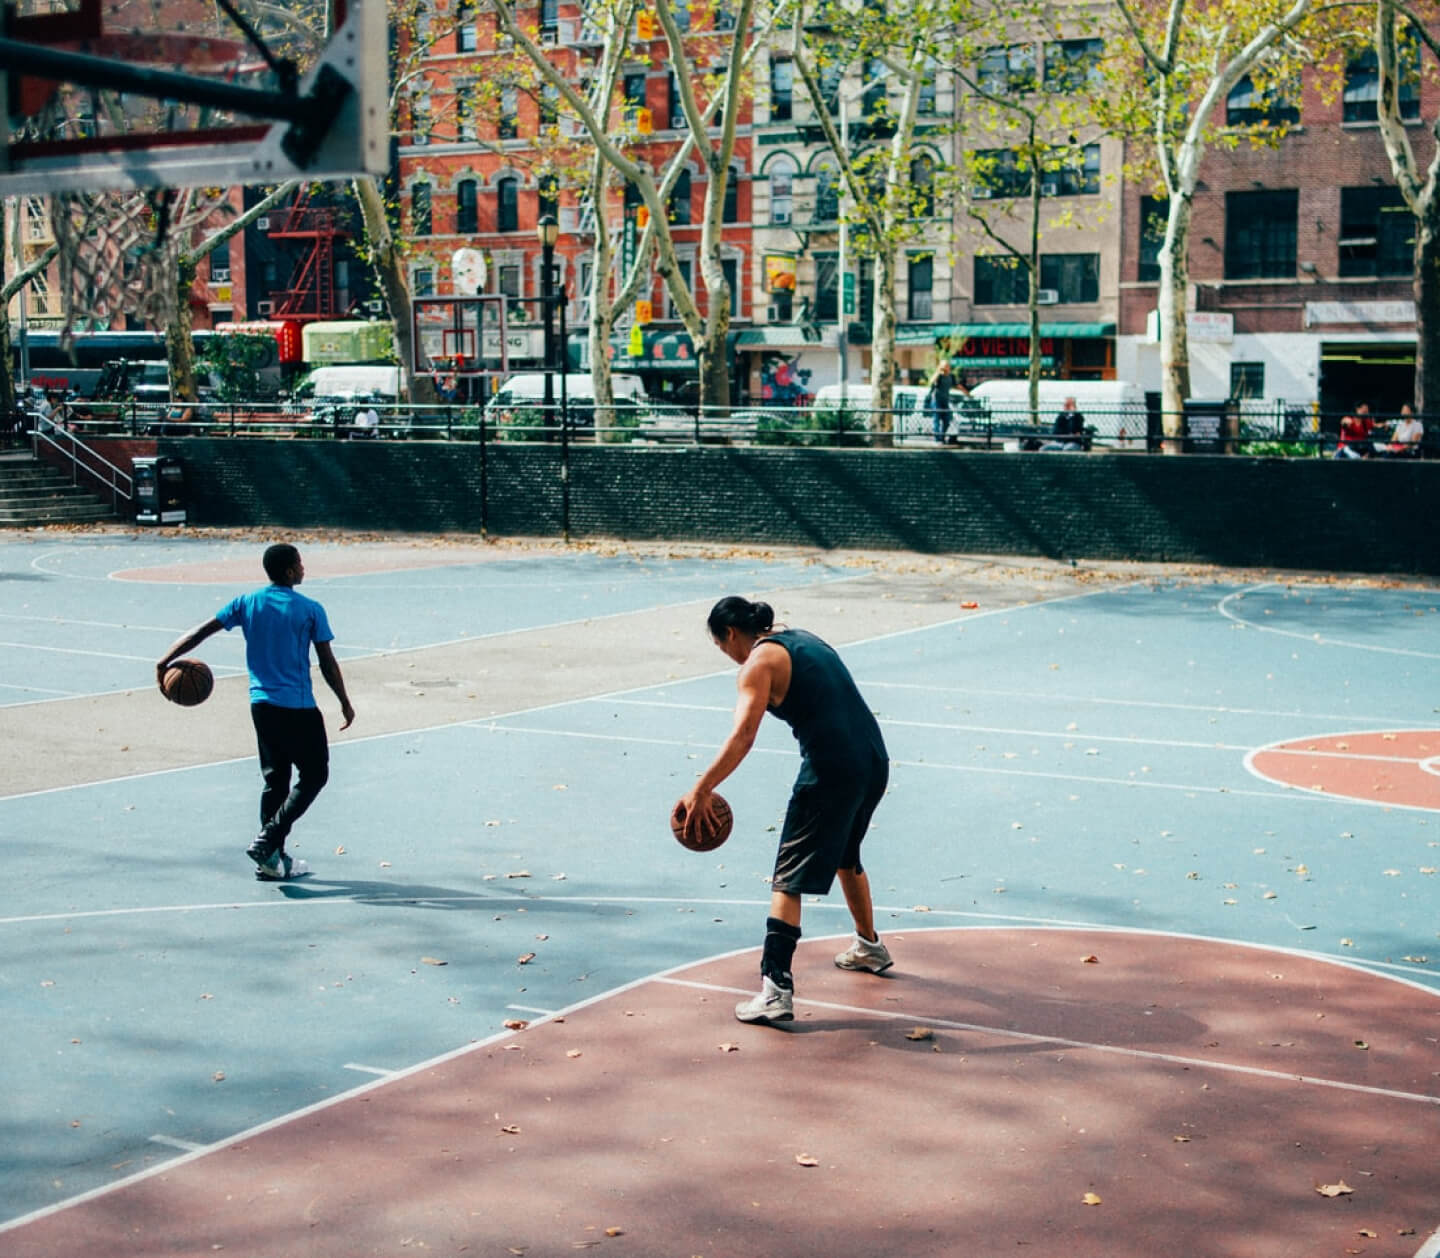 a neighbourhoods basketball court with two people playing